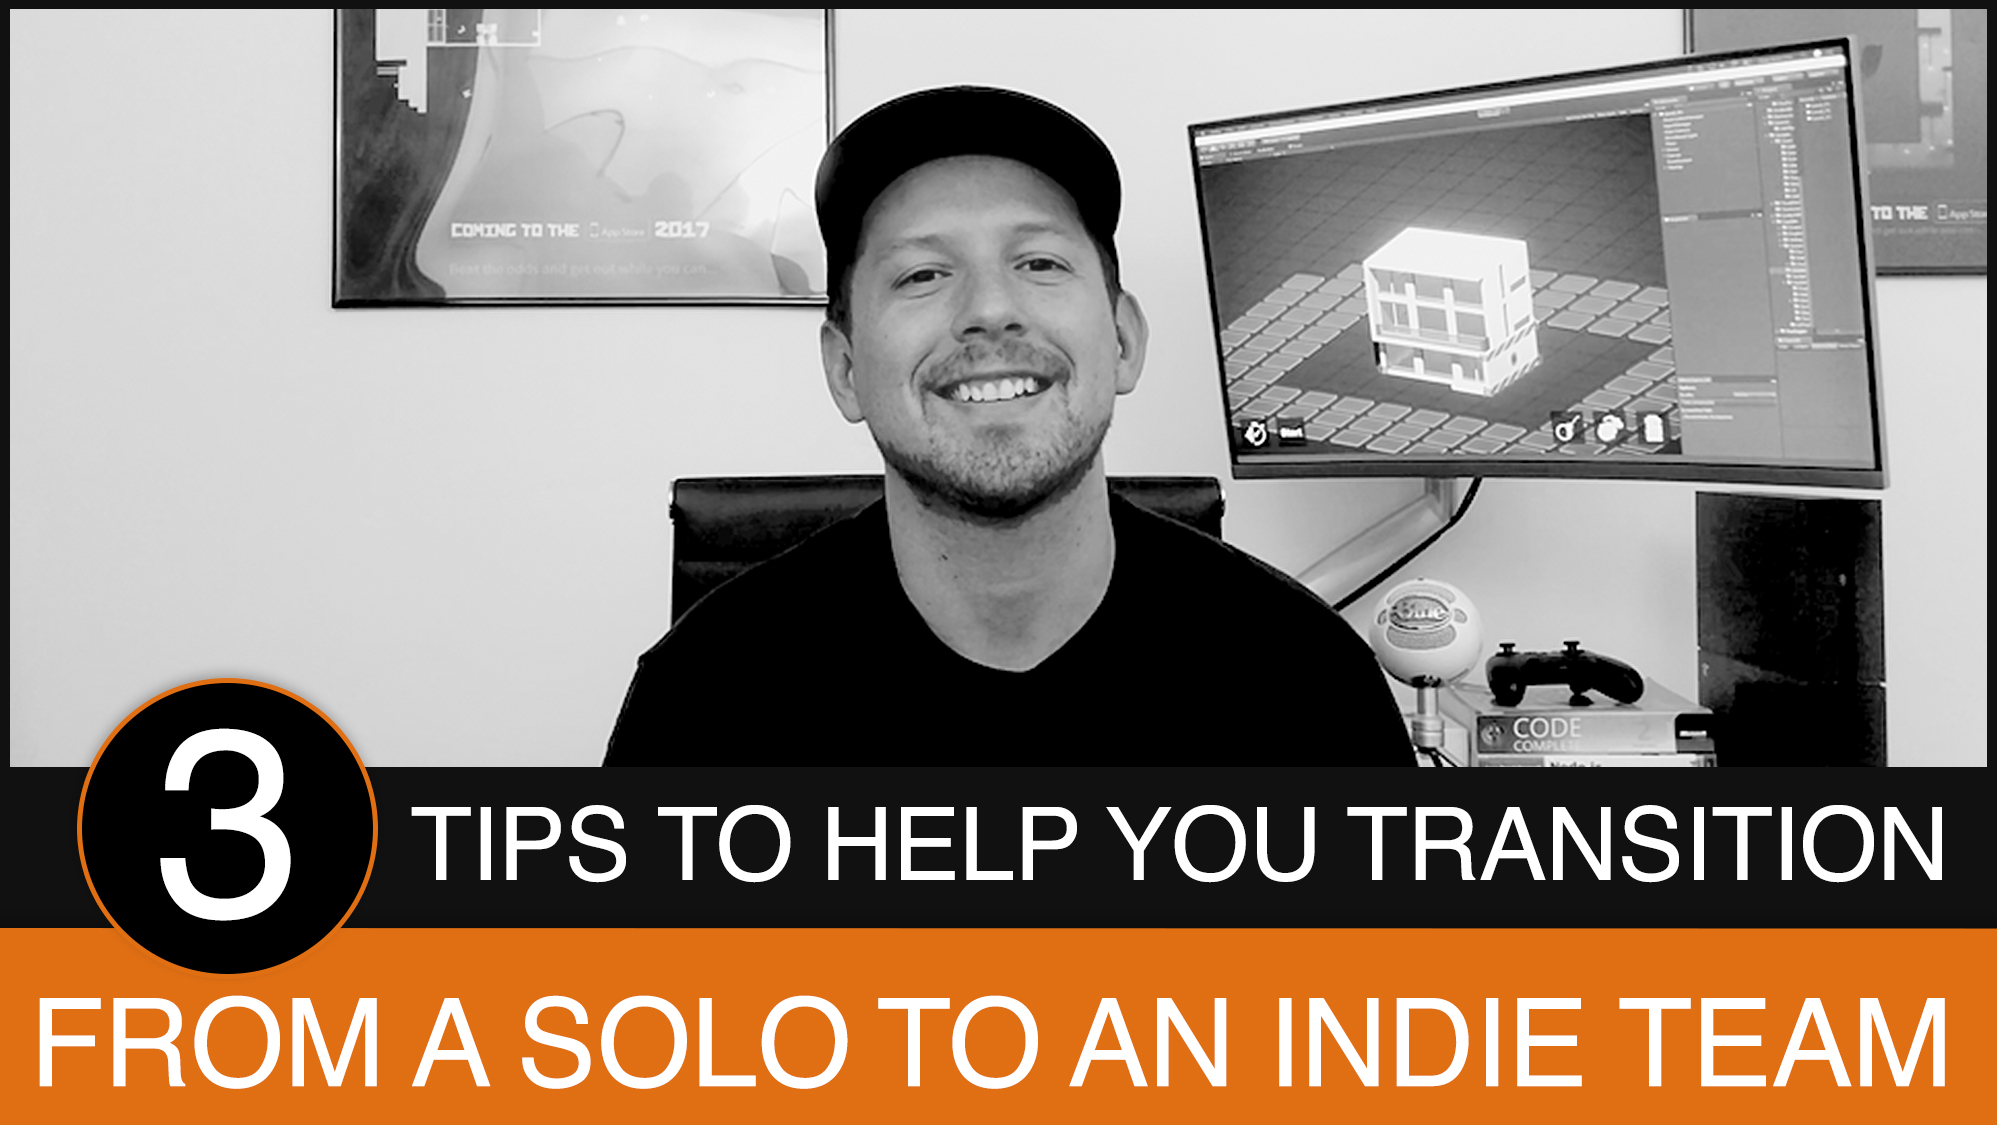 3 Tips to help you transition from a solo to an indie team